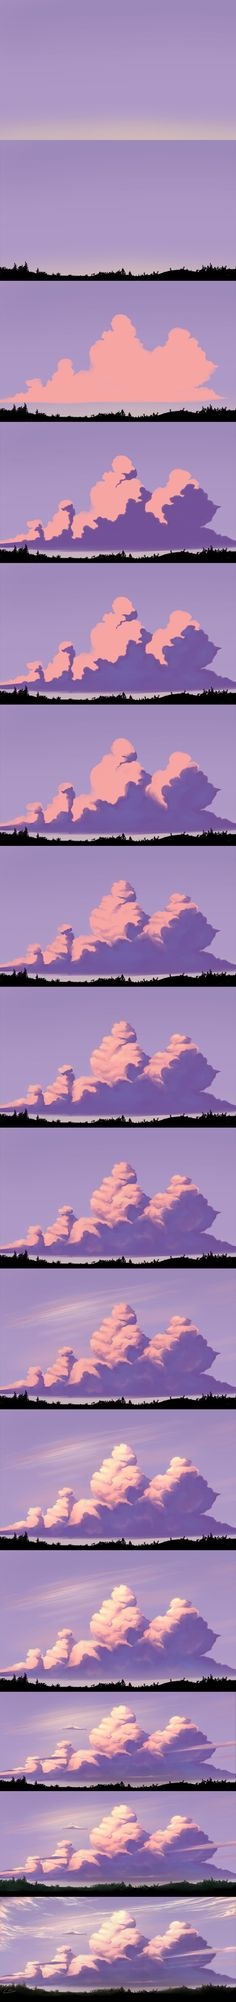 Evening Sky - Step by Step by Dea-89.deviantart.com on @DeviantArt